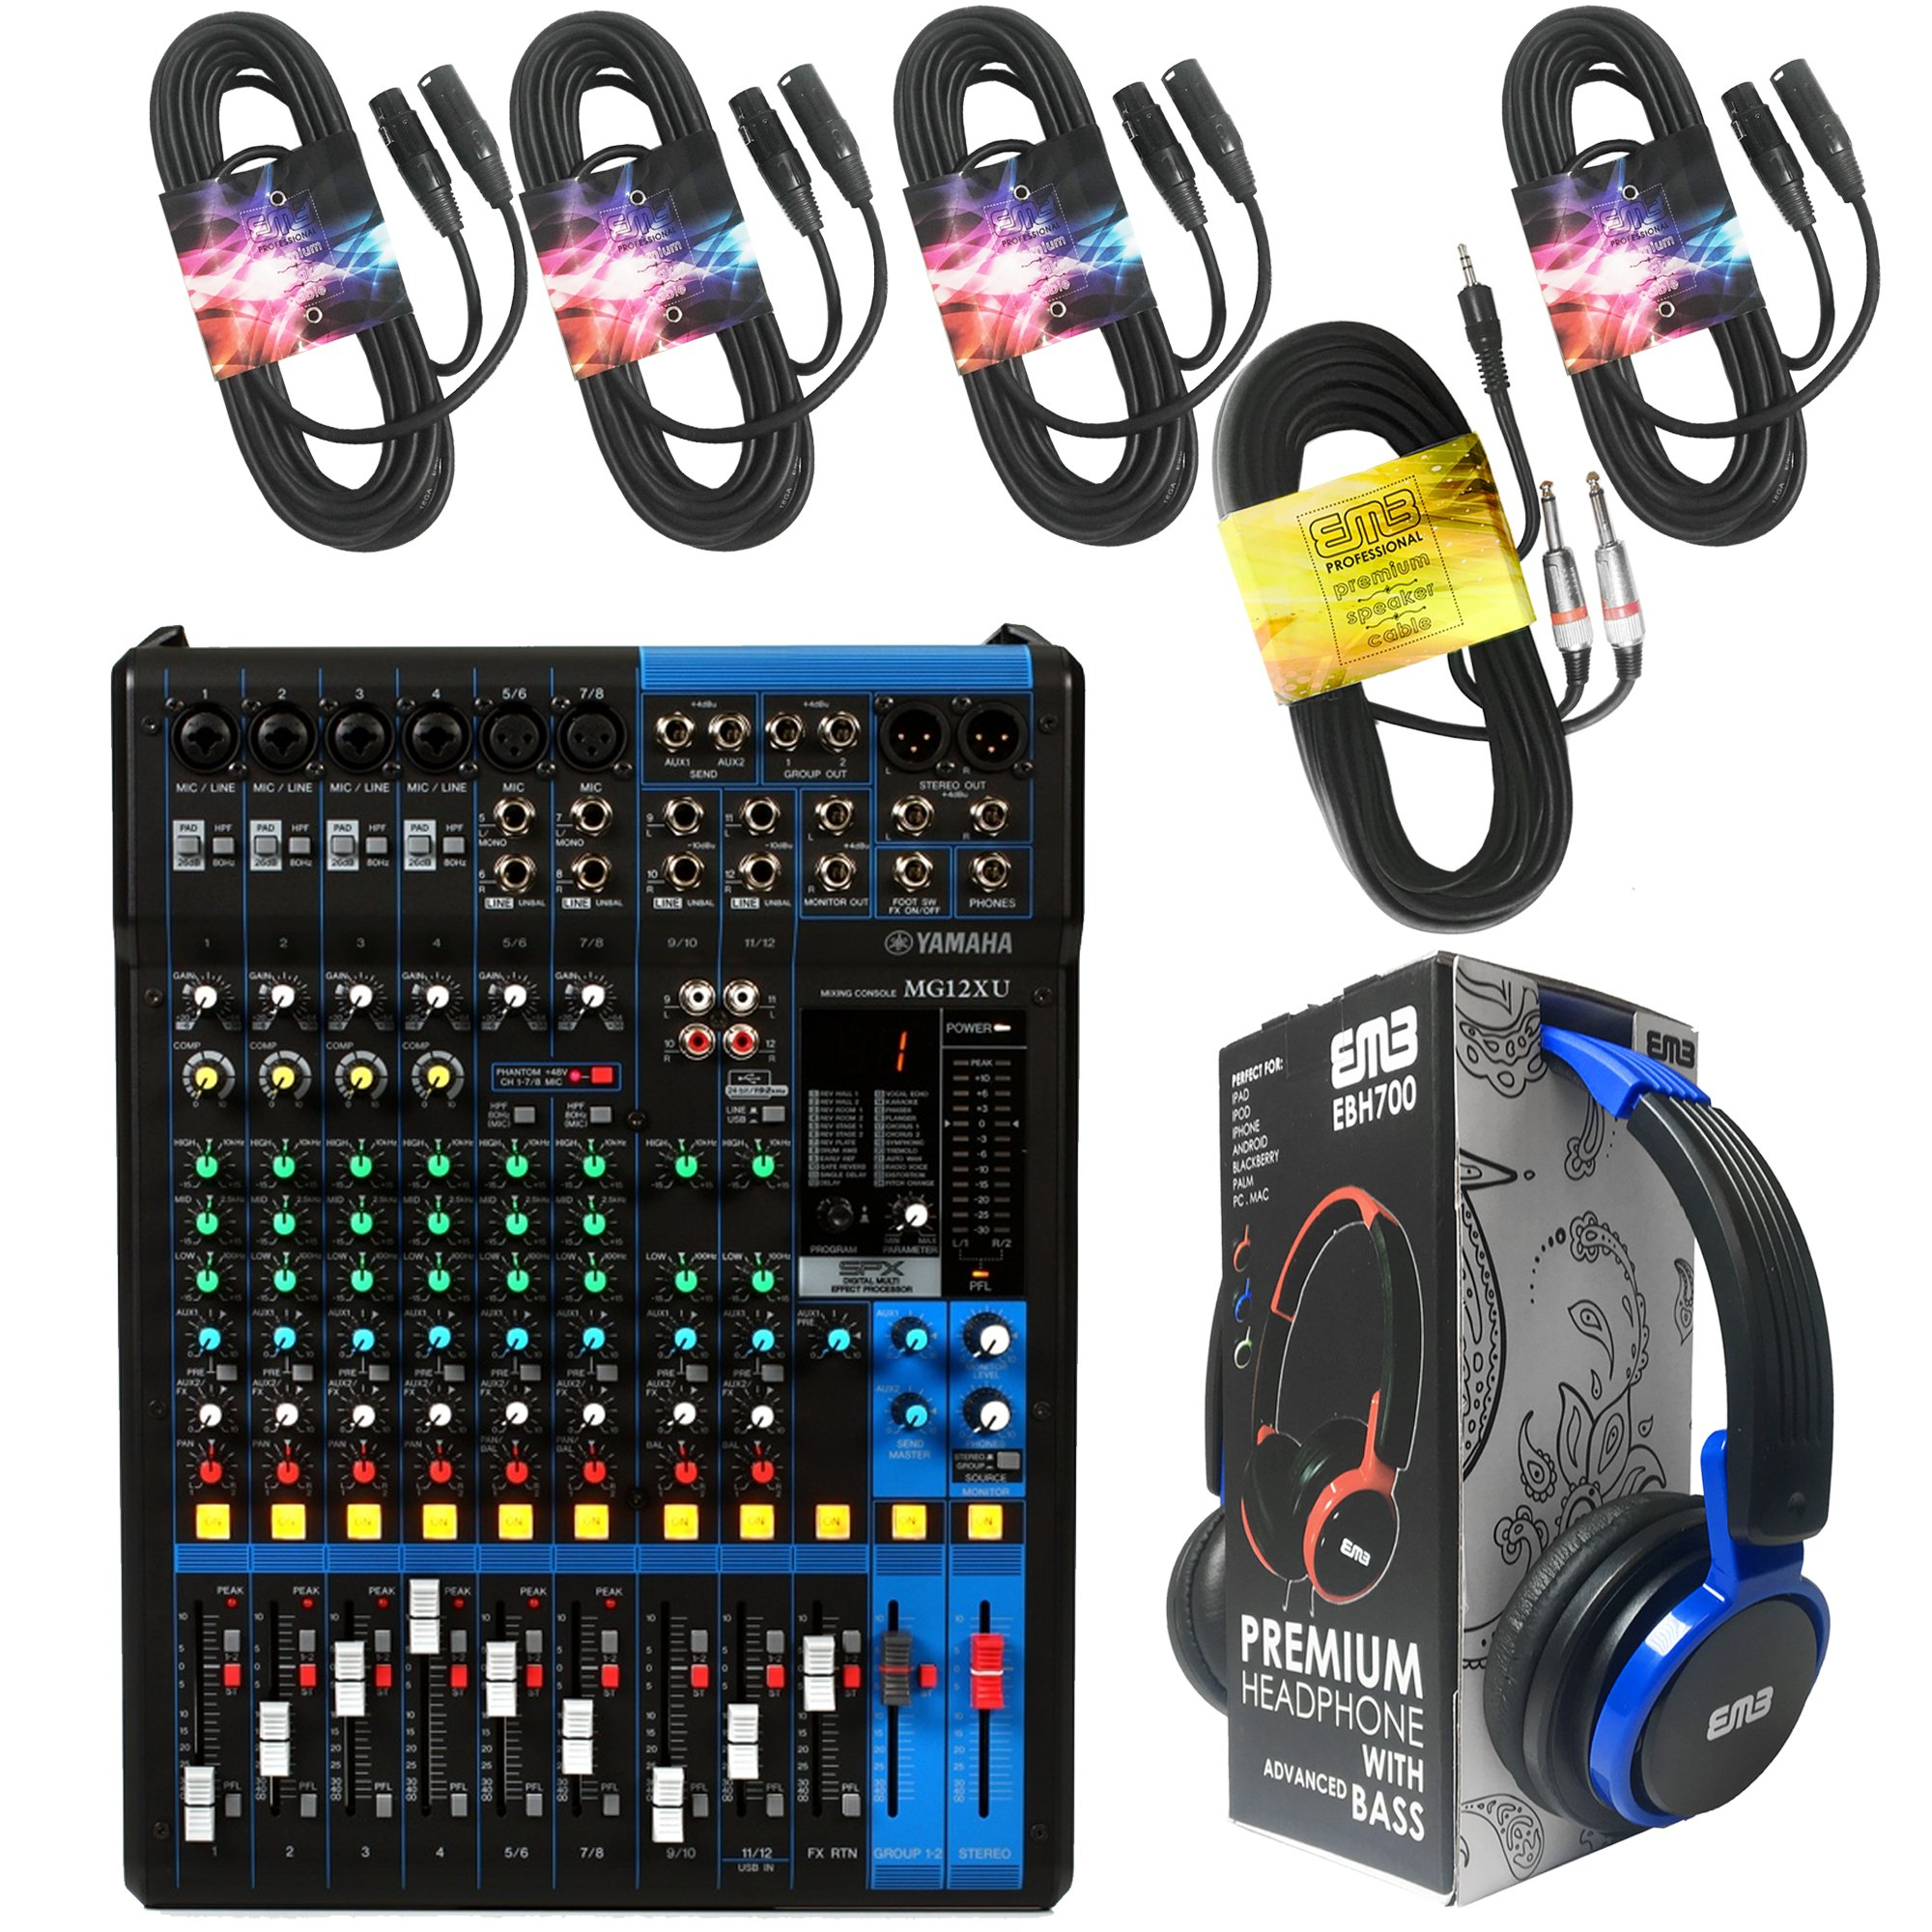 Yamaha Package Bundle - Yamaha MG12XU 12-channel Analog Mixer + EMB EBH700 Pro Preminum Wire Headphone + 4 XLR XLarge Cables + 3.5mm to Dual 1/4'' Cable